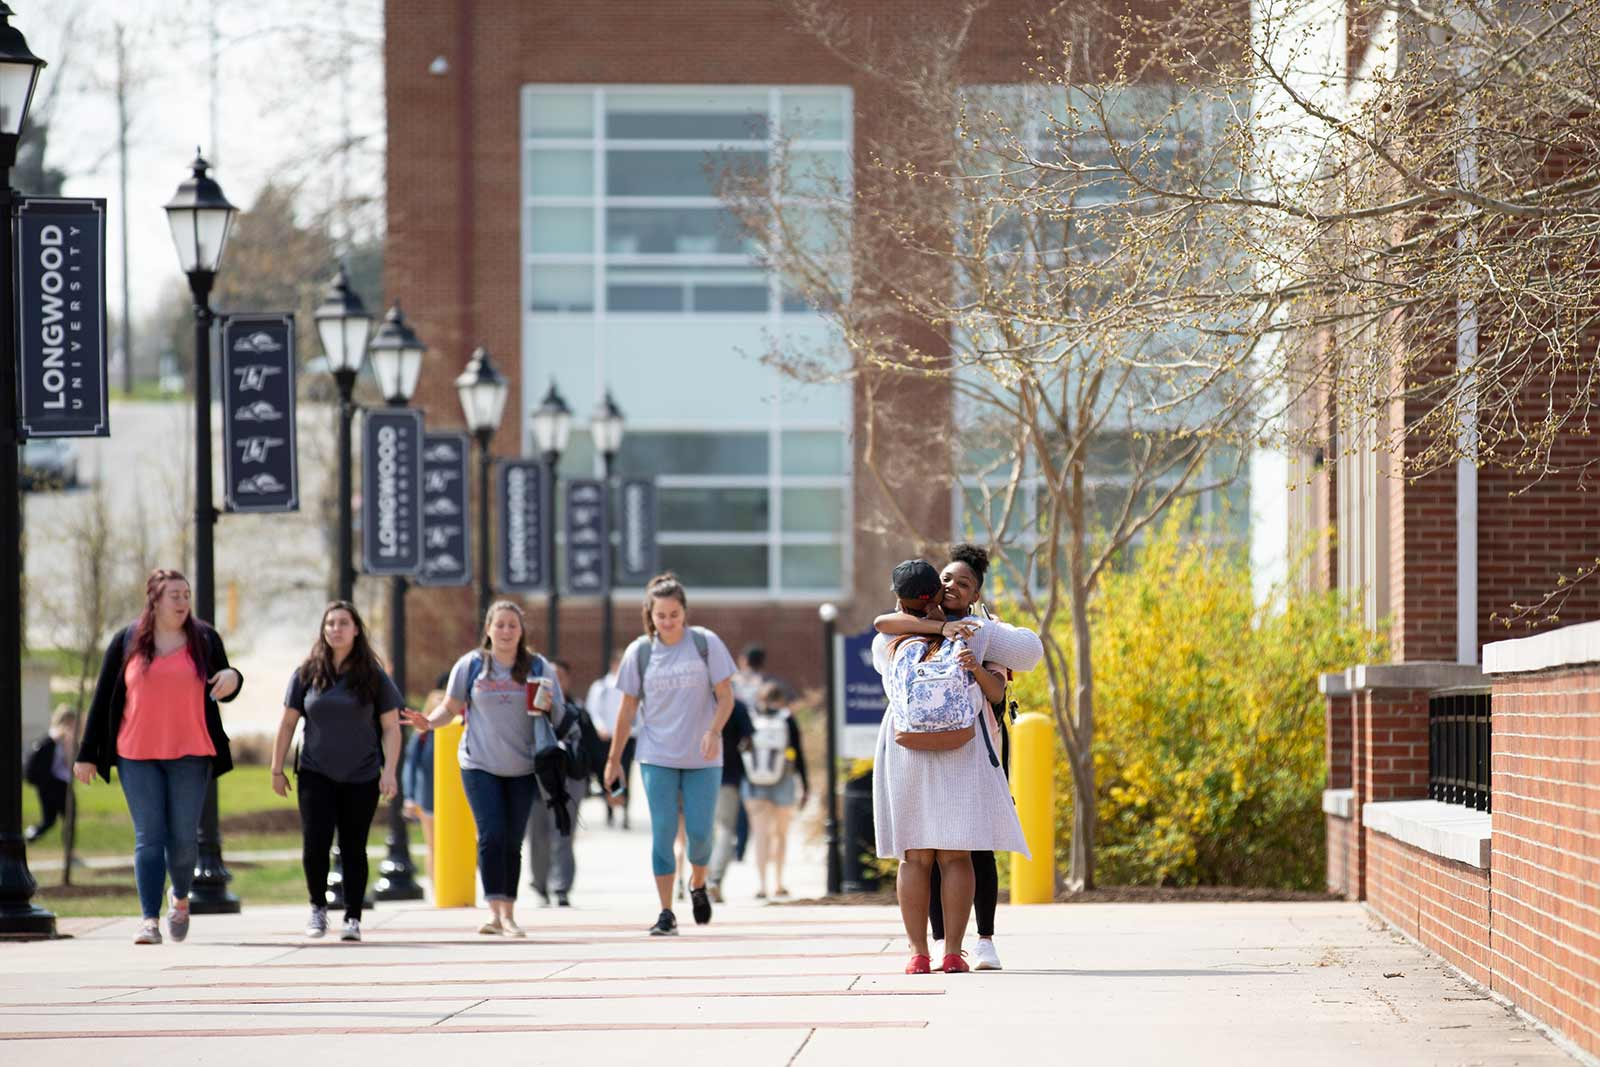 Brock Commons is the highly trafficked pedestrian thoroughfare through the center of campus—a corridor that connects academic, student and residence life. It's only an eight-minute walk from the High Street entryway to the ball fields on the south end of campus.